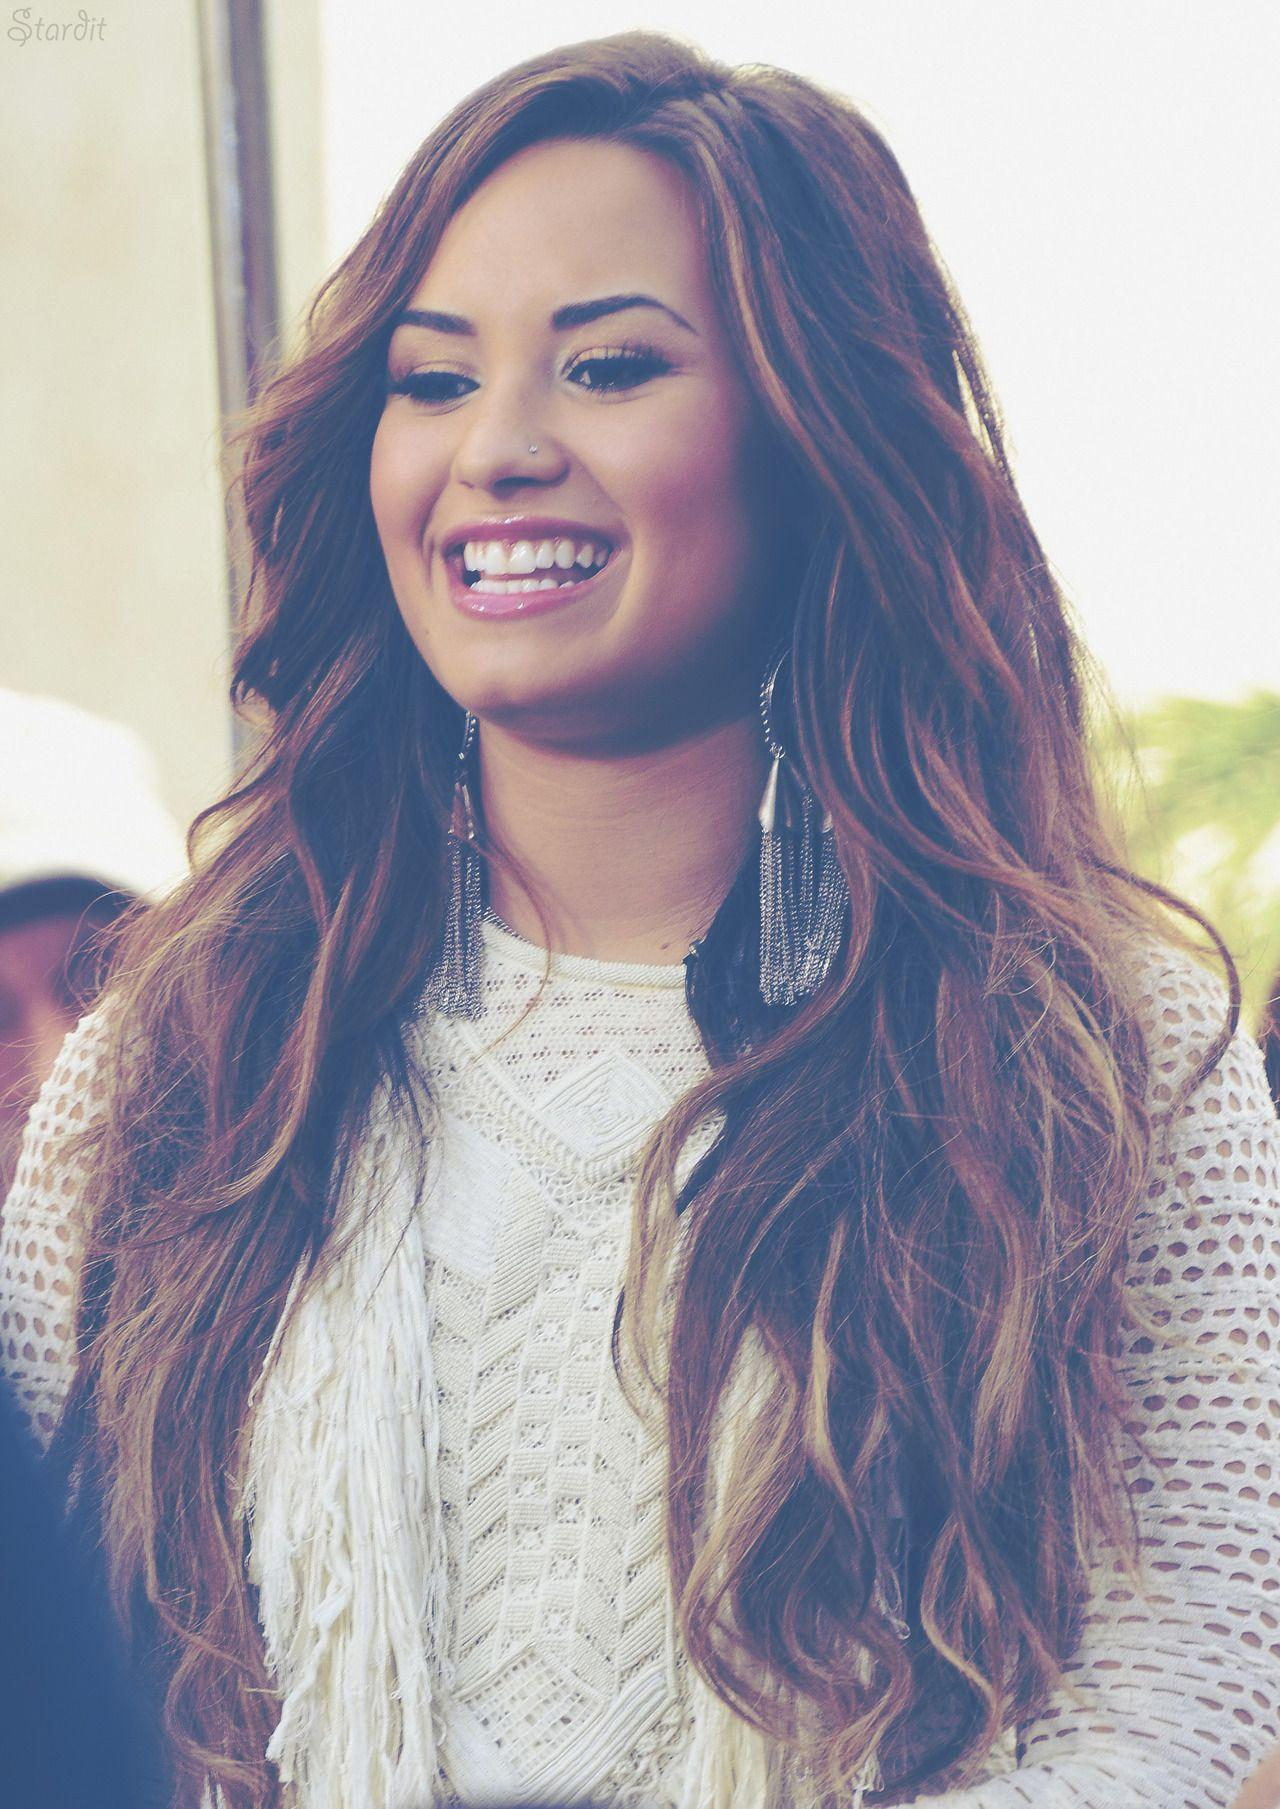 Demi Lovato Wallpapers Tumblr - Wallpaper Cave